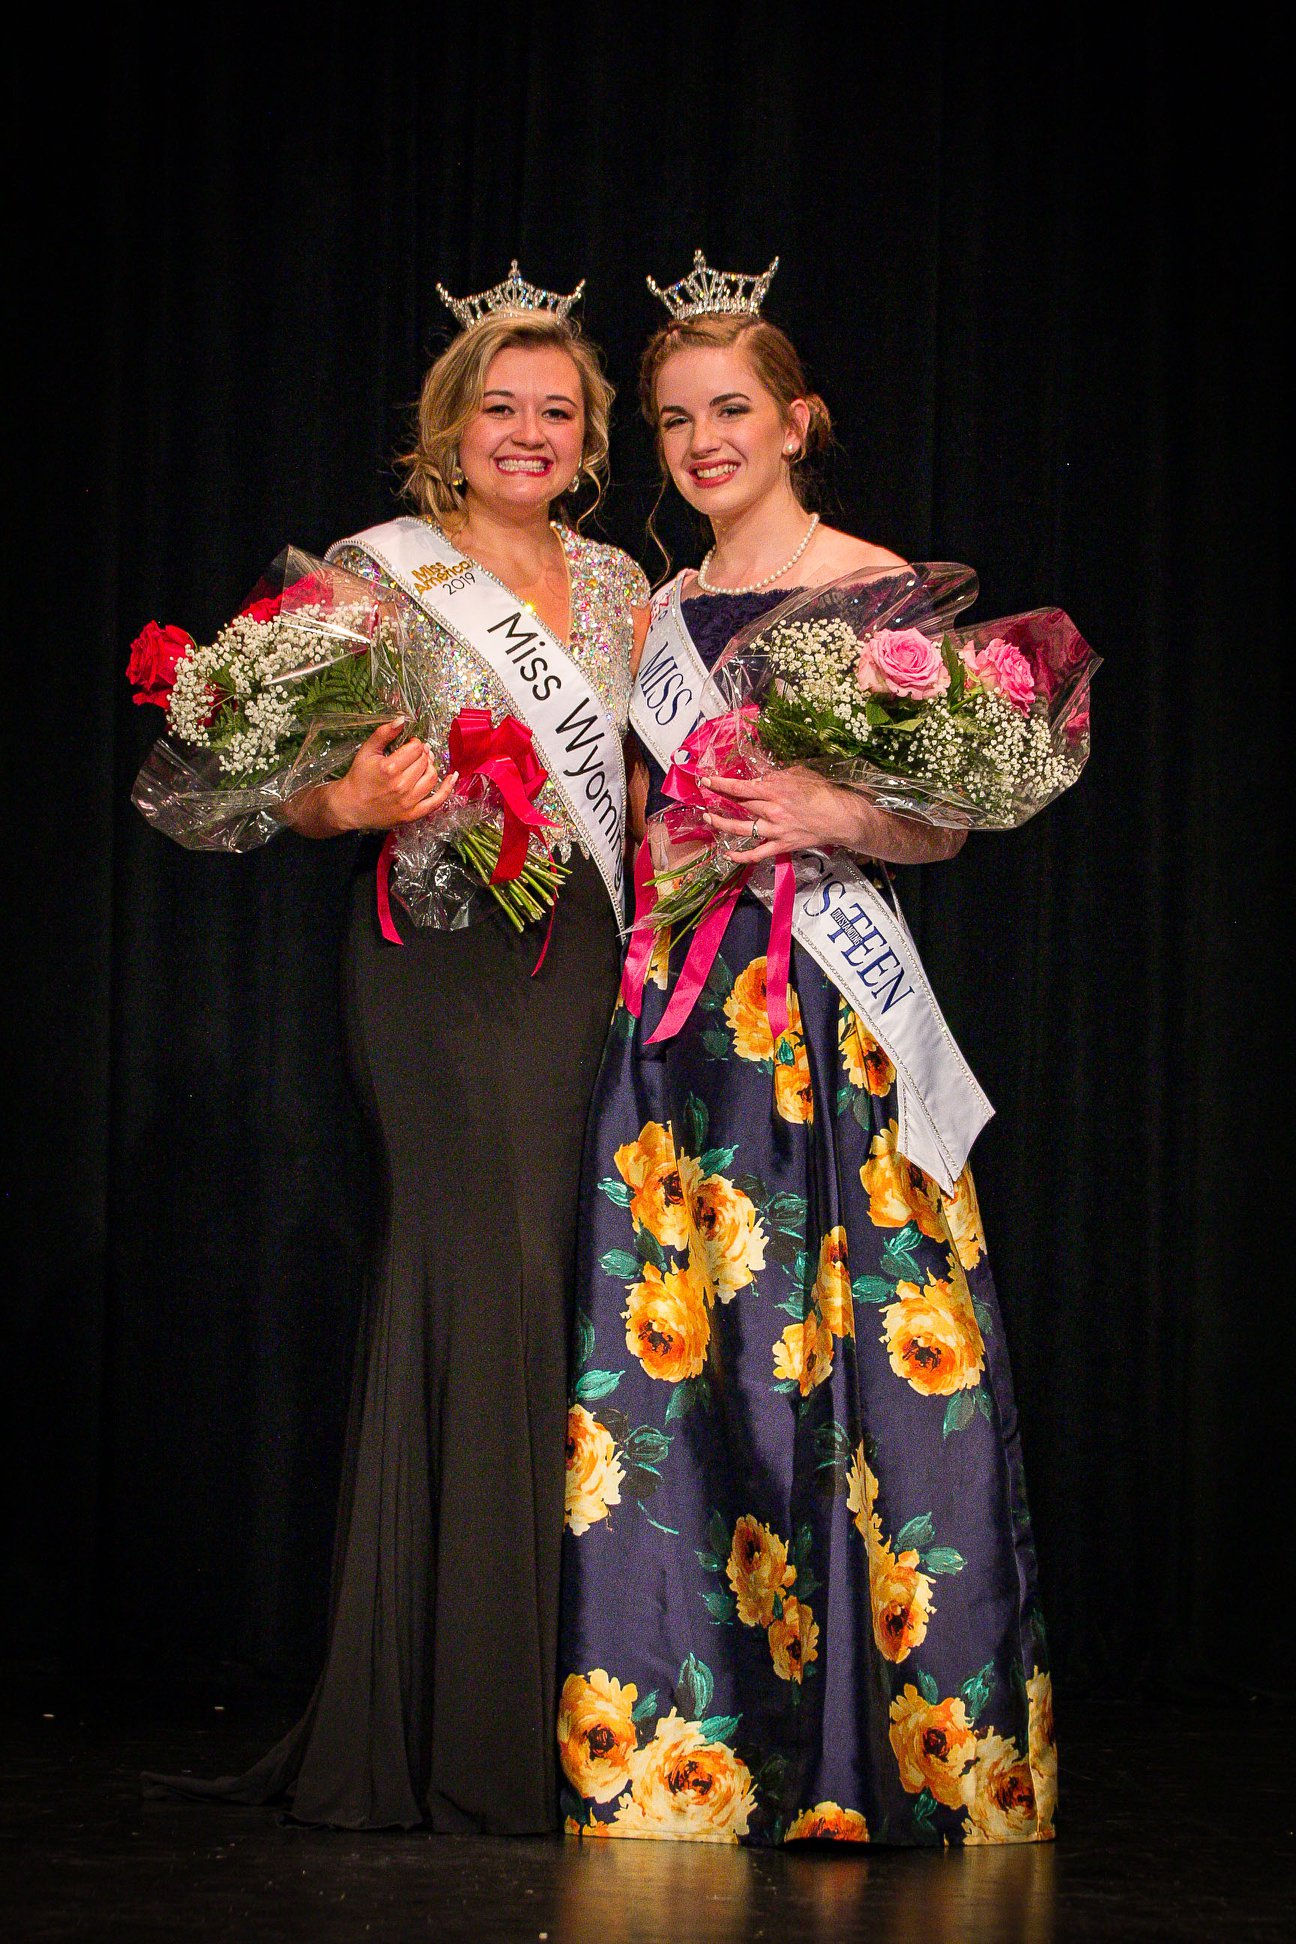 There's only one Miss America - Register for your chance to compete for the state title and go on to perform on the national stage for Miss America!